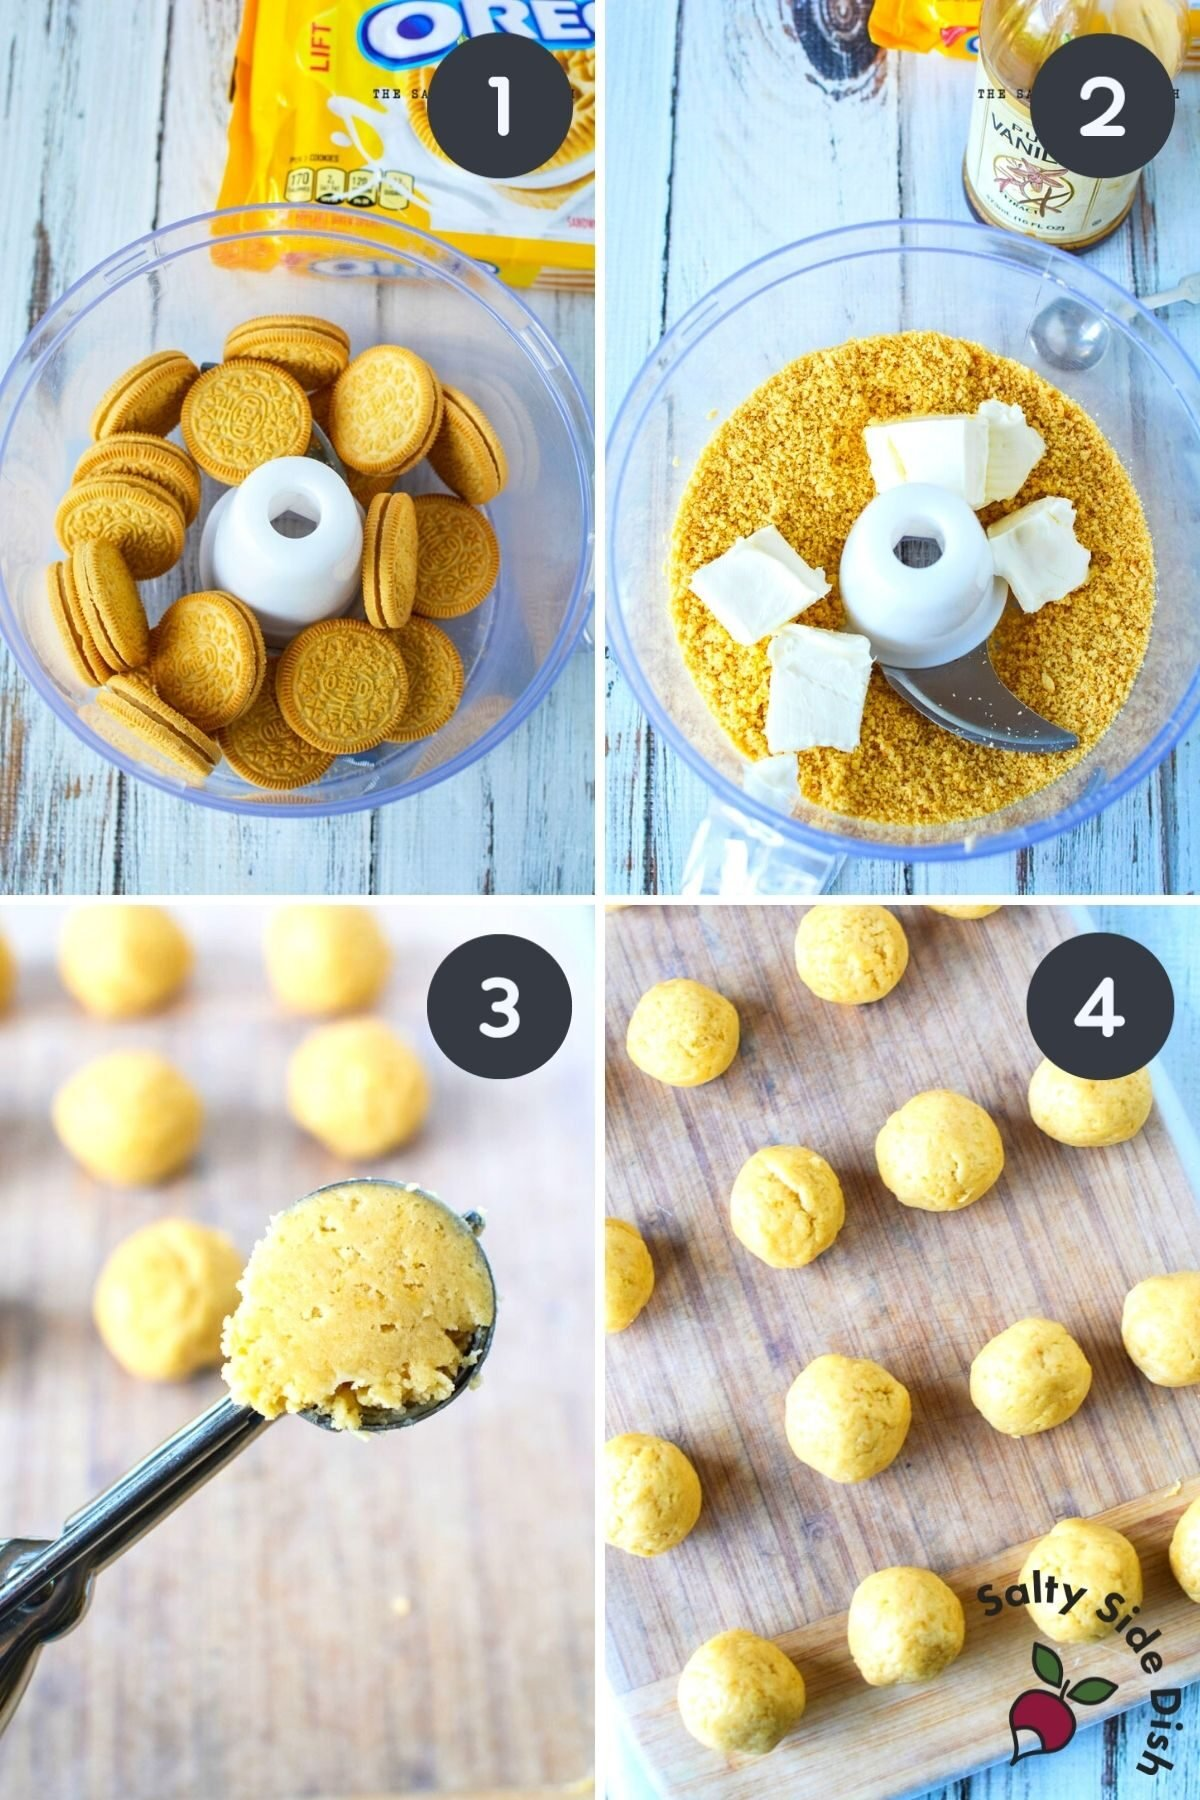 golden Oreo cookies being made into crumbs and turned into Oreo balls.